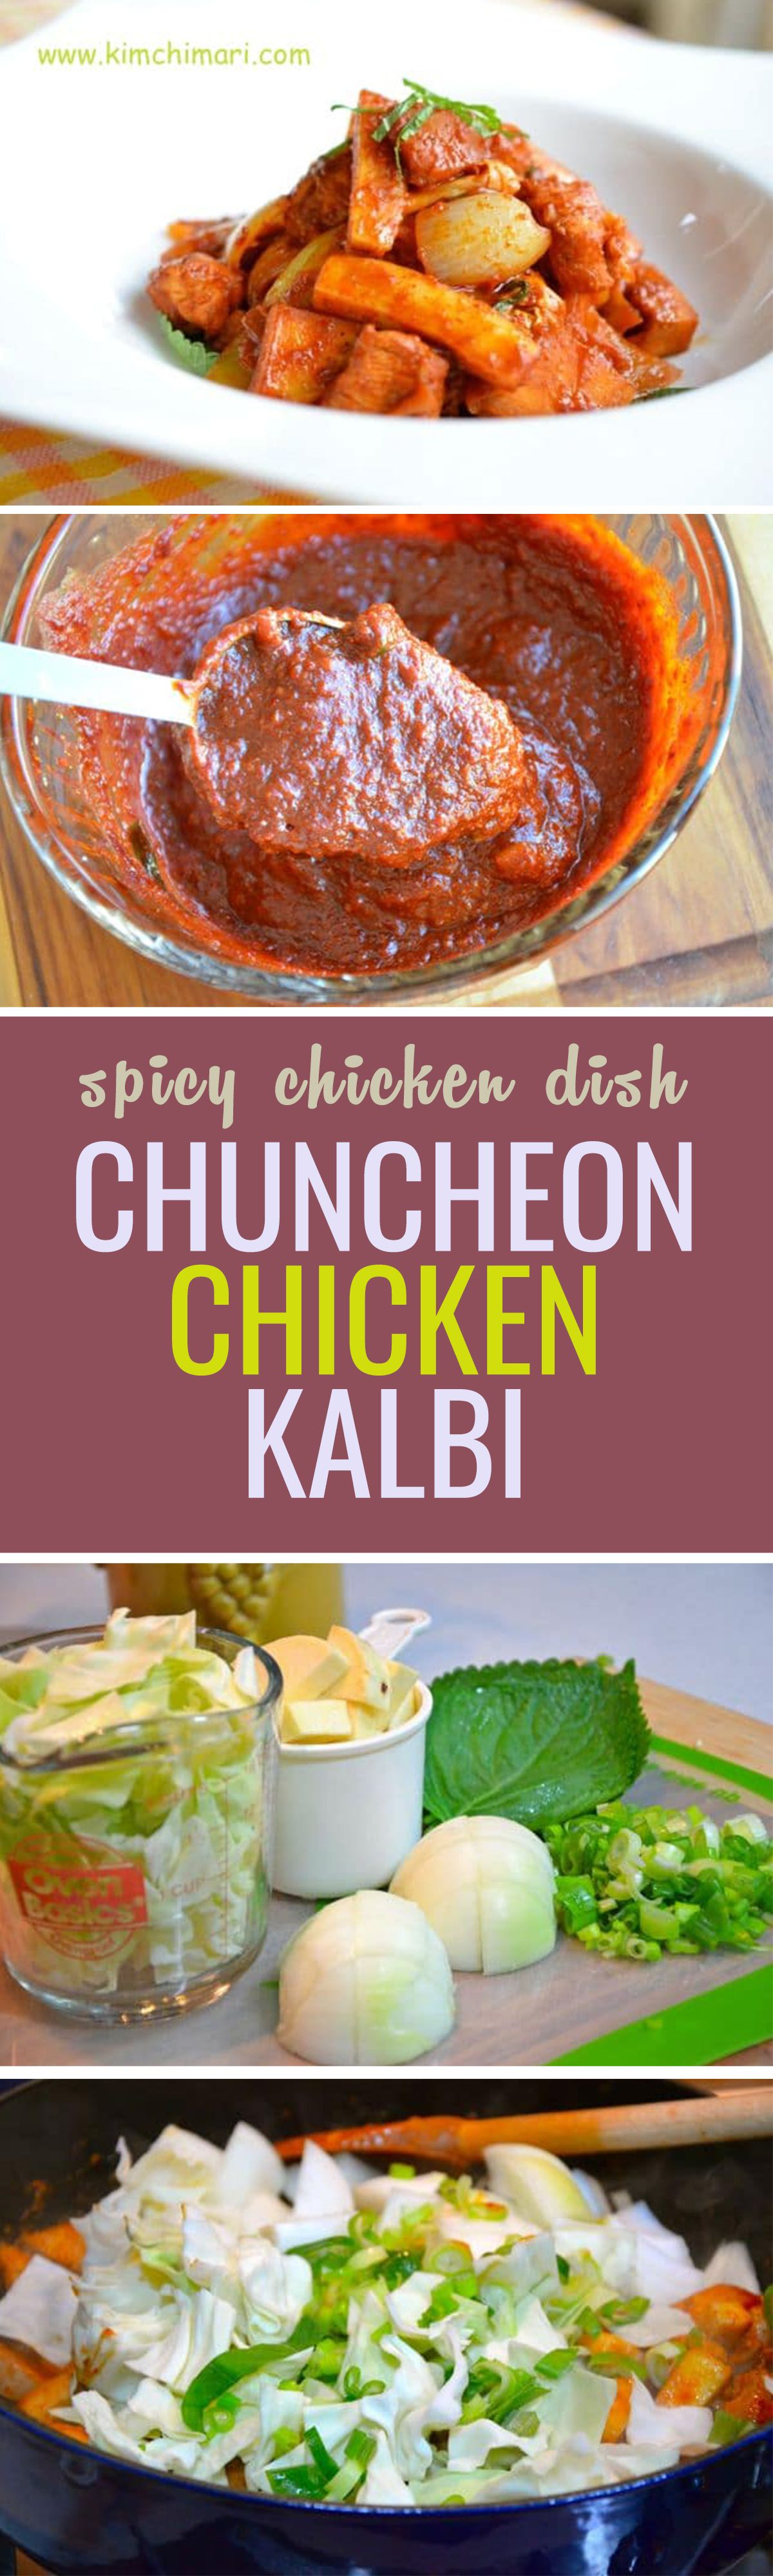 Chuncheon dak kalbi is a wonderful one pot dish that is slightly asian food recipes chuncheon dak kalbi is a wonderful one pot dish that is slightly spicy sweet and forumfinder Choice Image